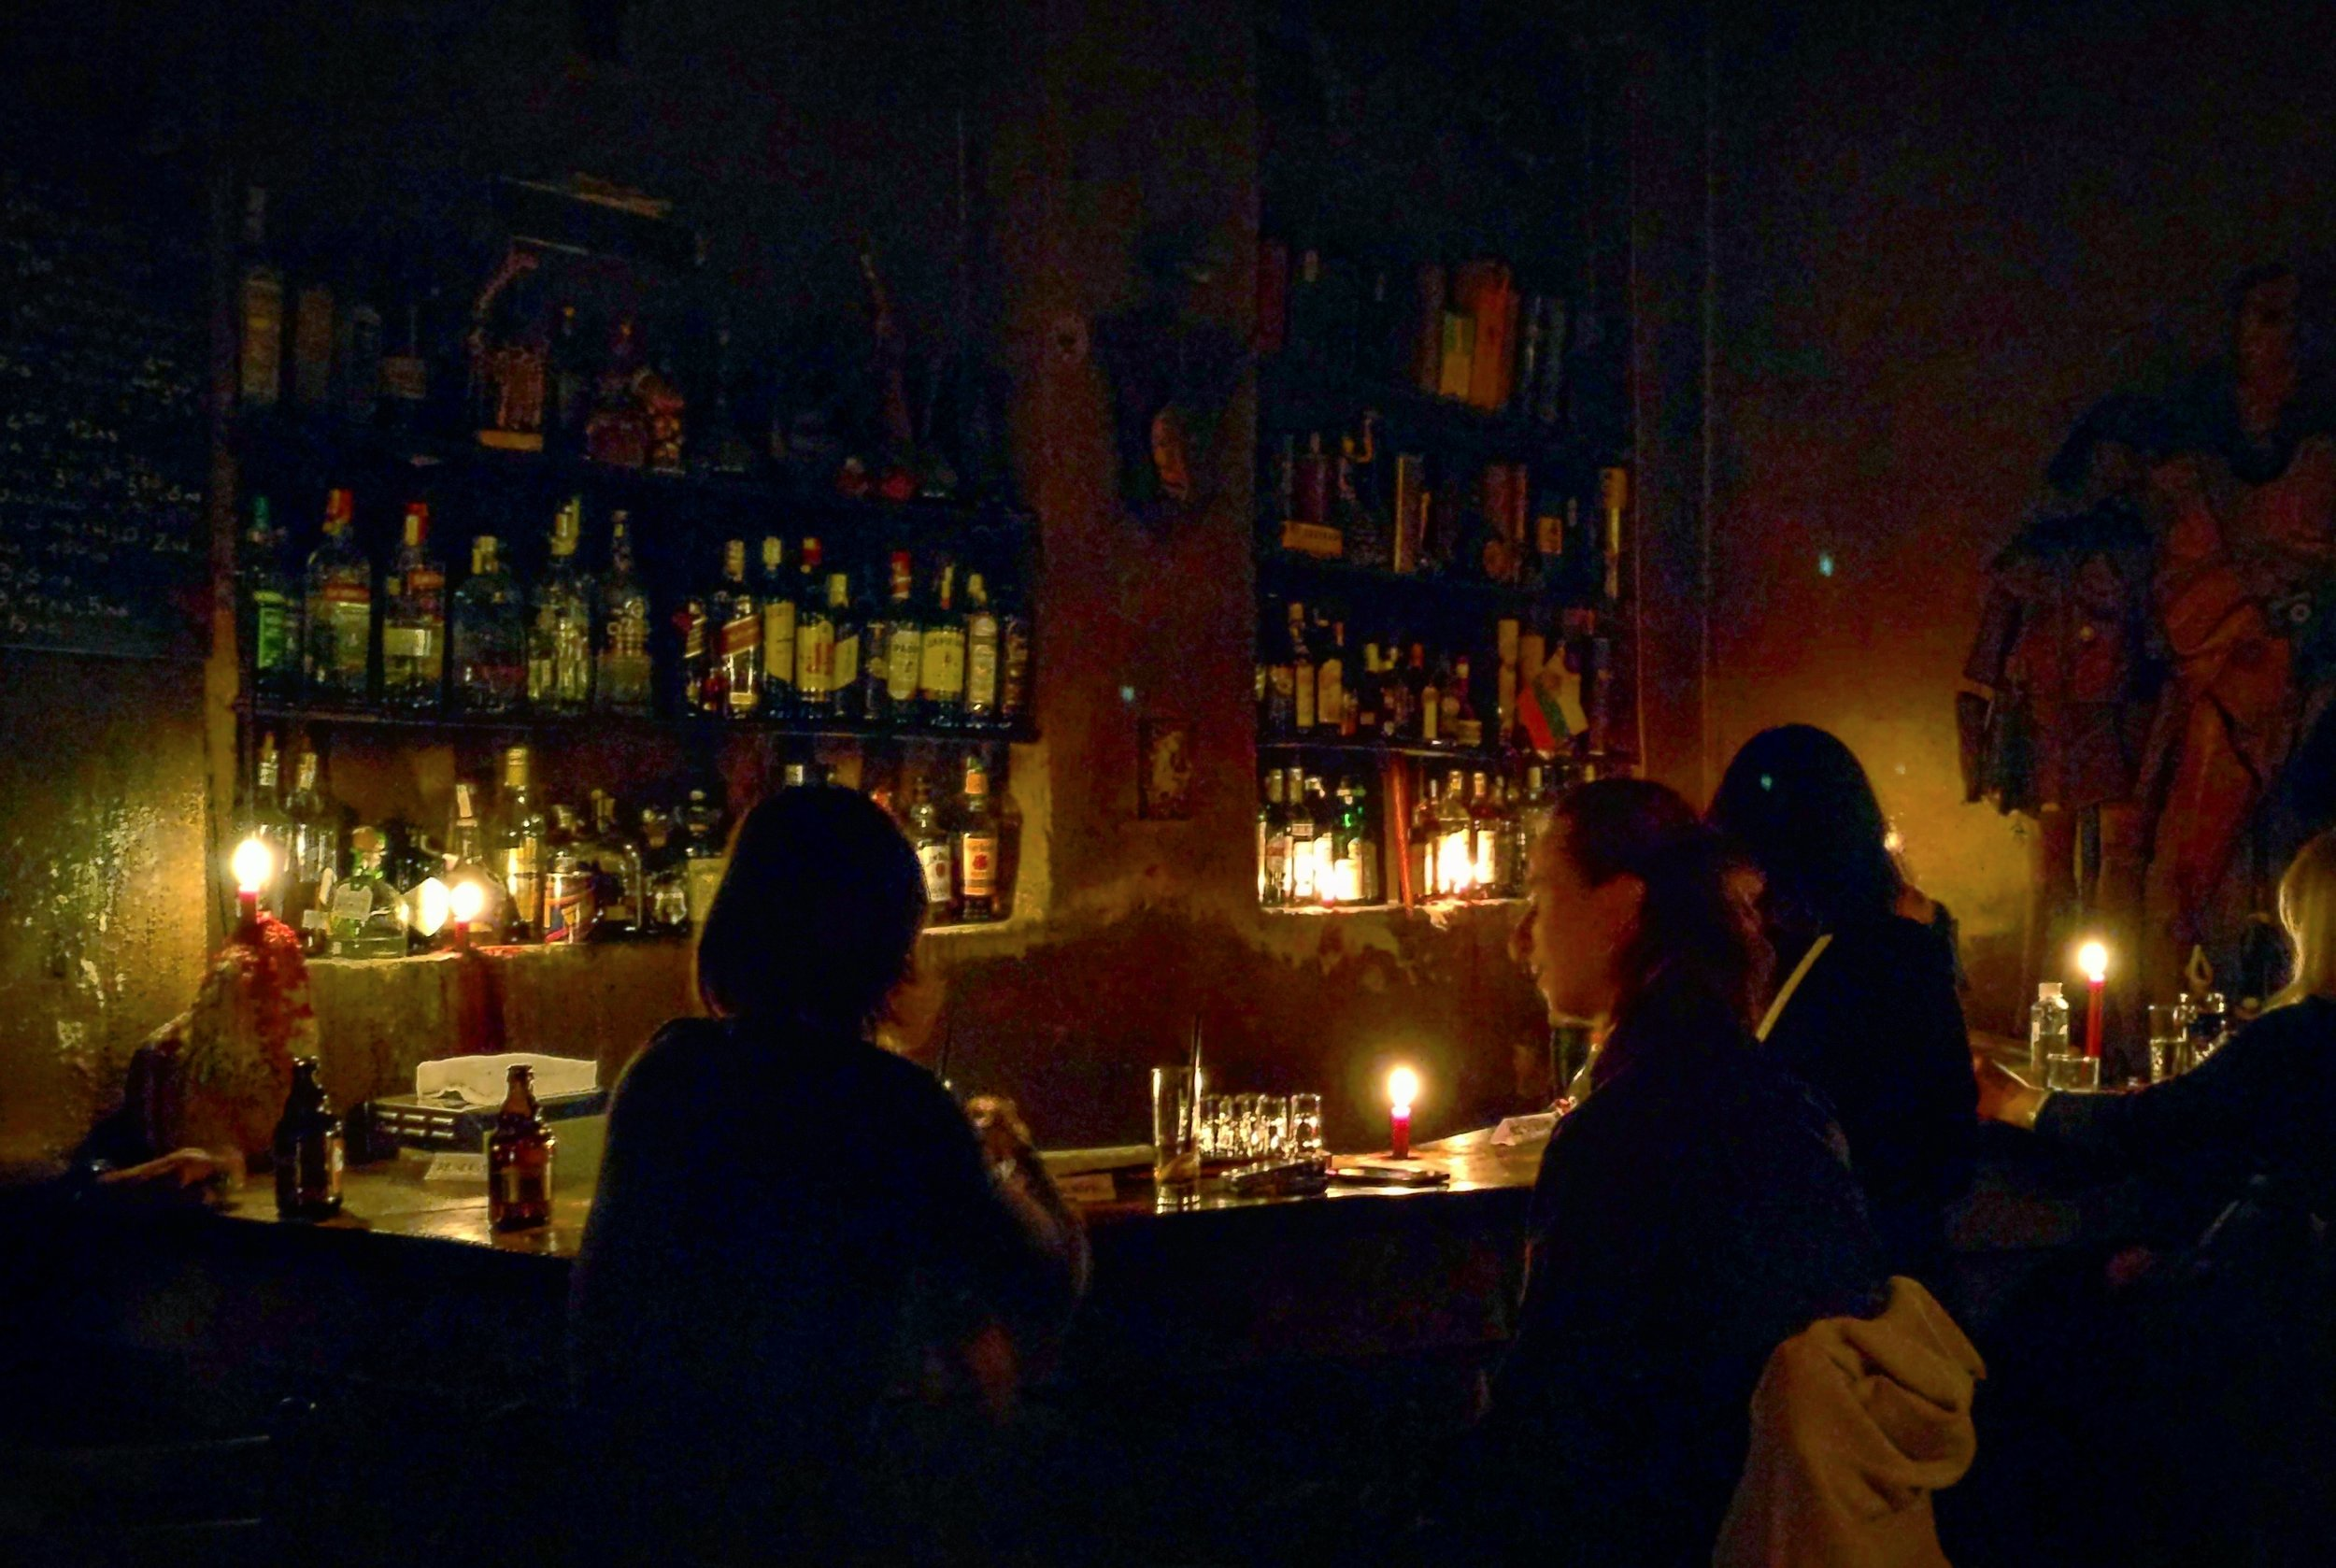 The candlelit bar